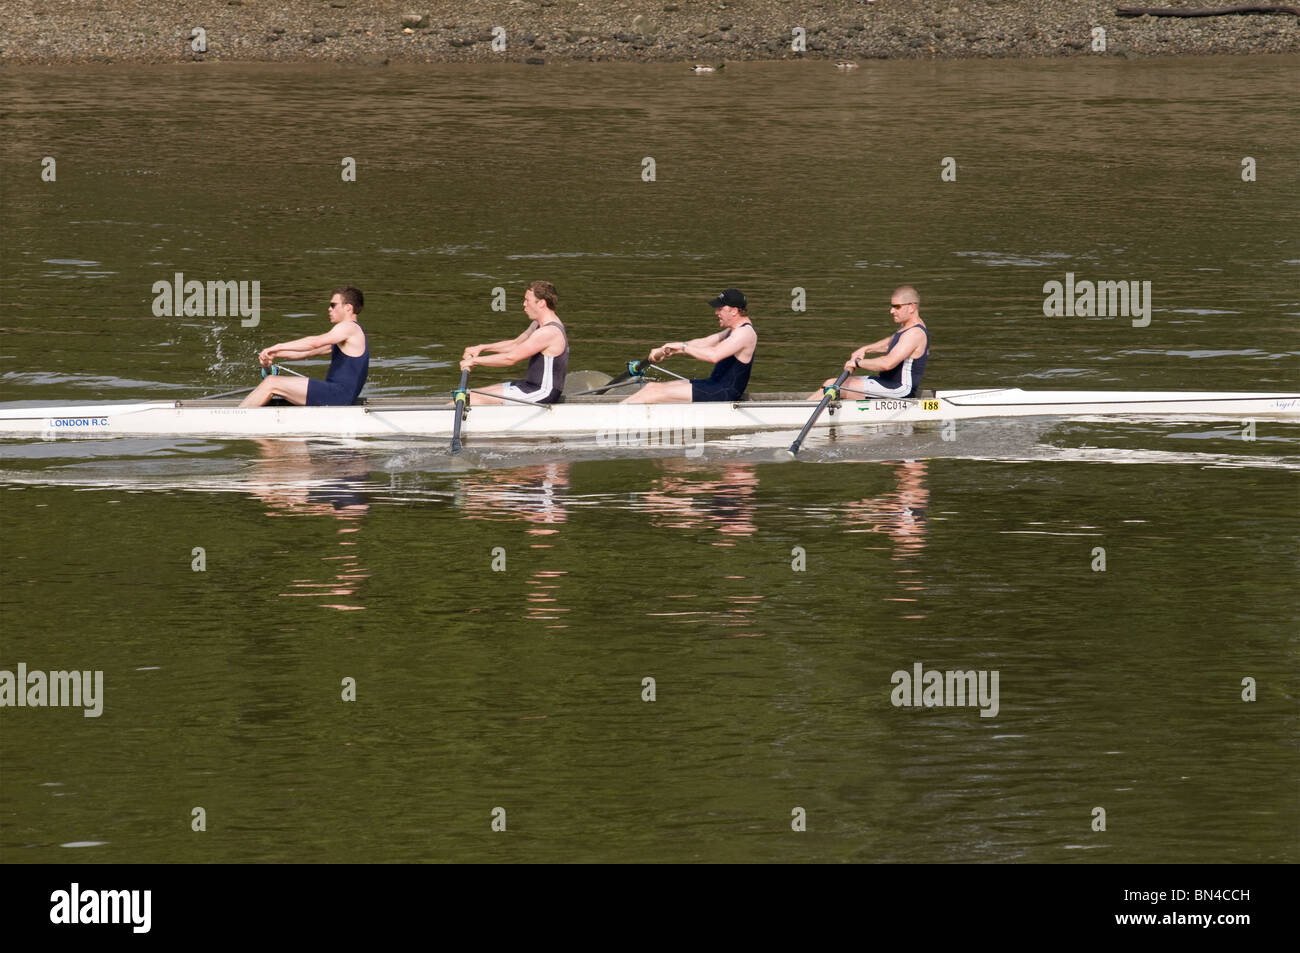 Rowing on the Thames at Hammersmith, London, United Kingdom - Stock Image